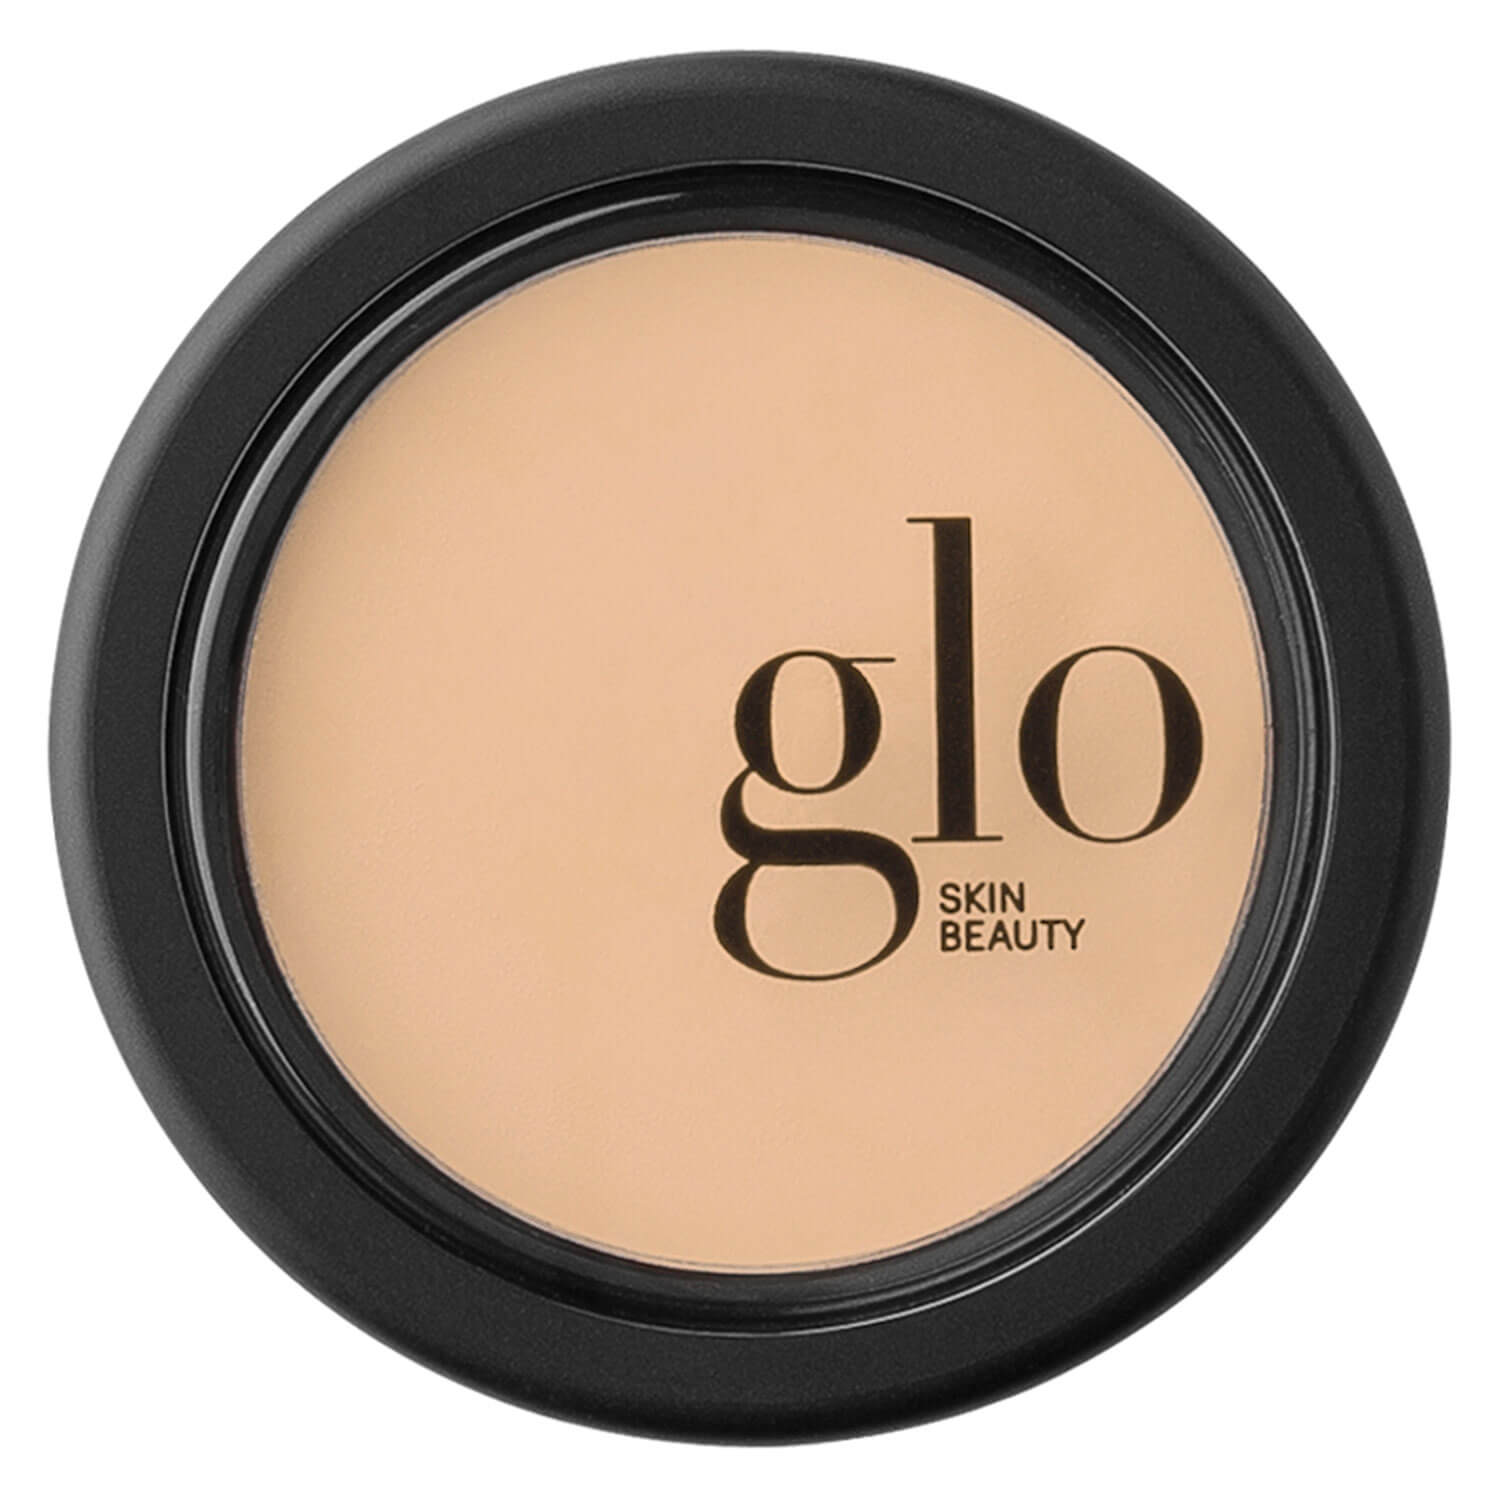 Glo Skin Beauty Camouflage - Oil Free Camouflage Sand